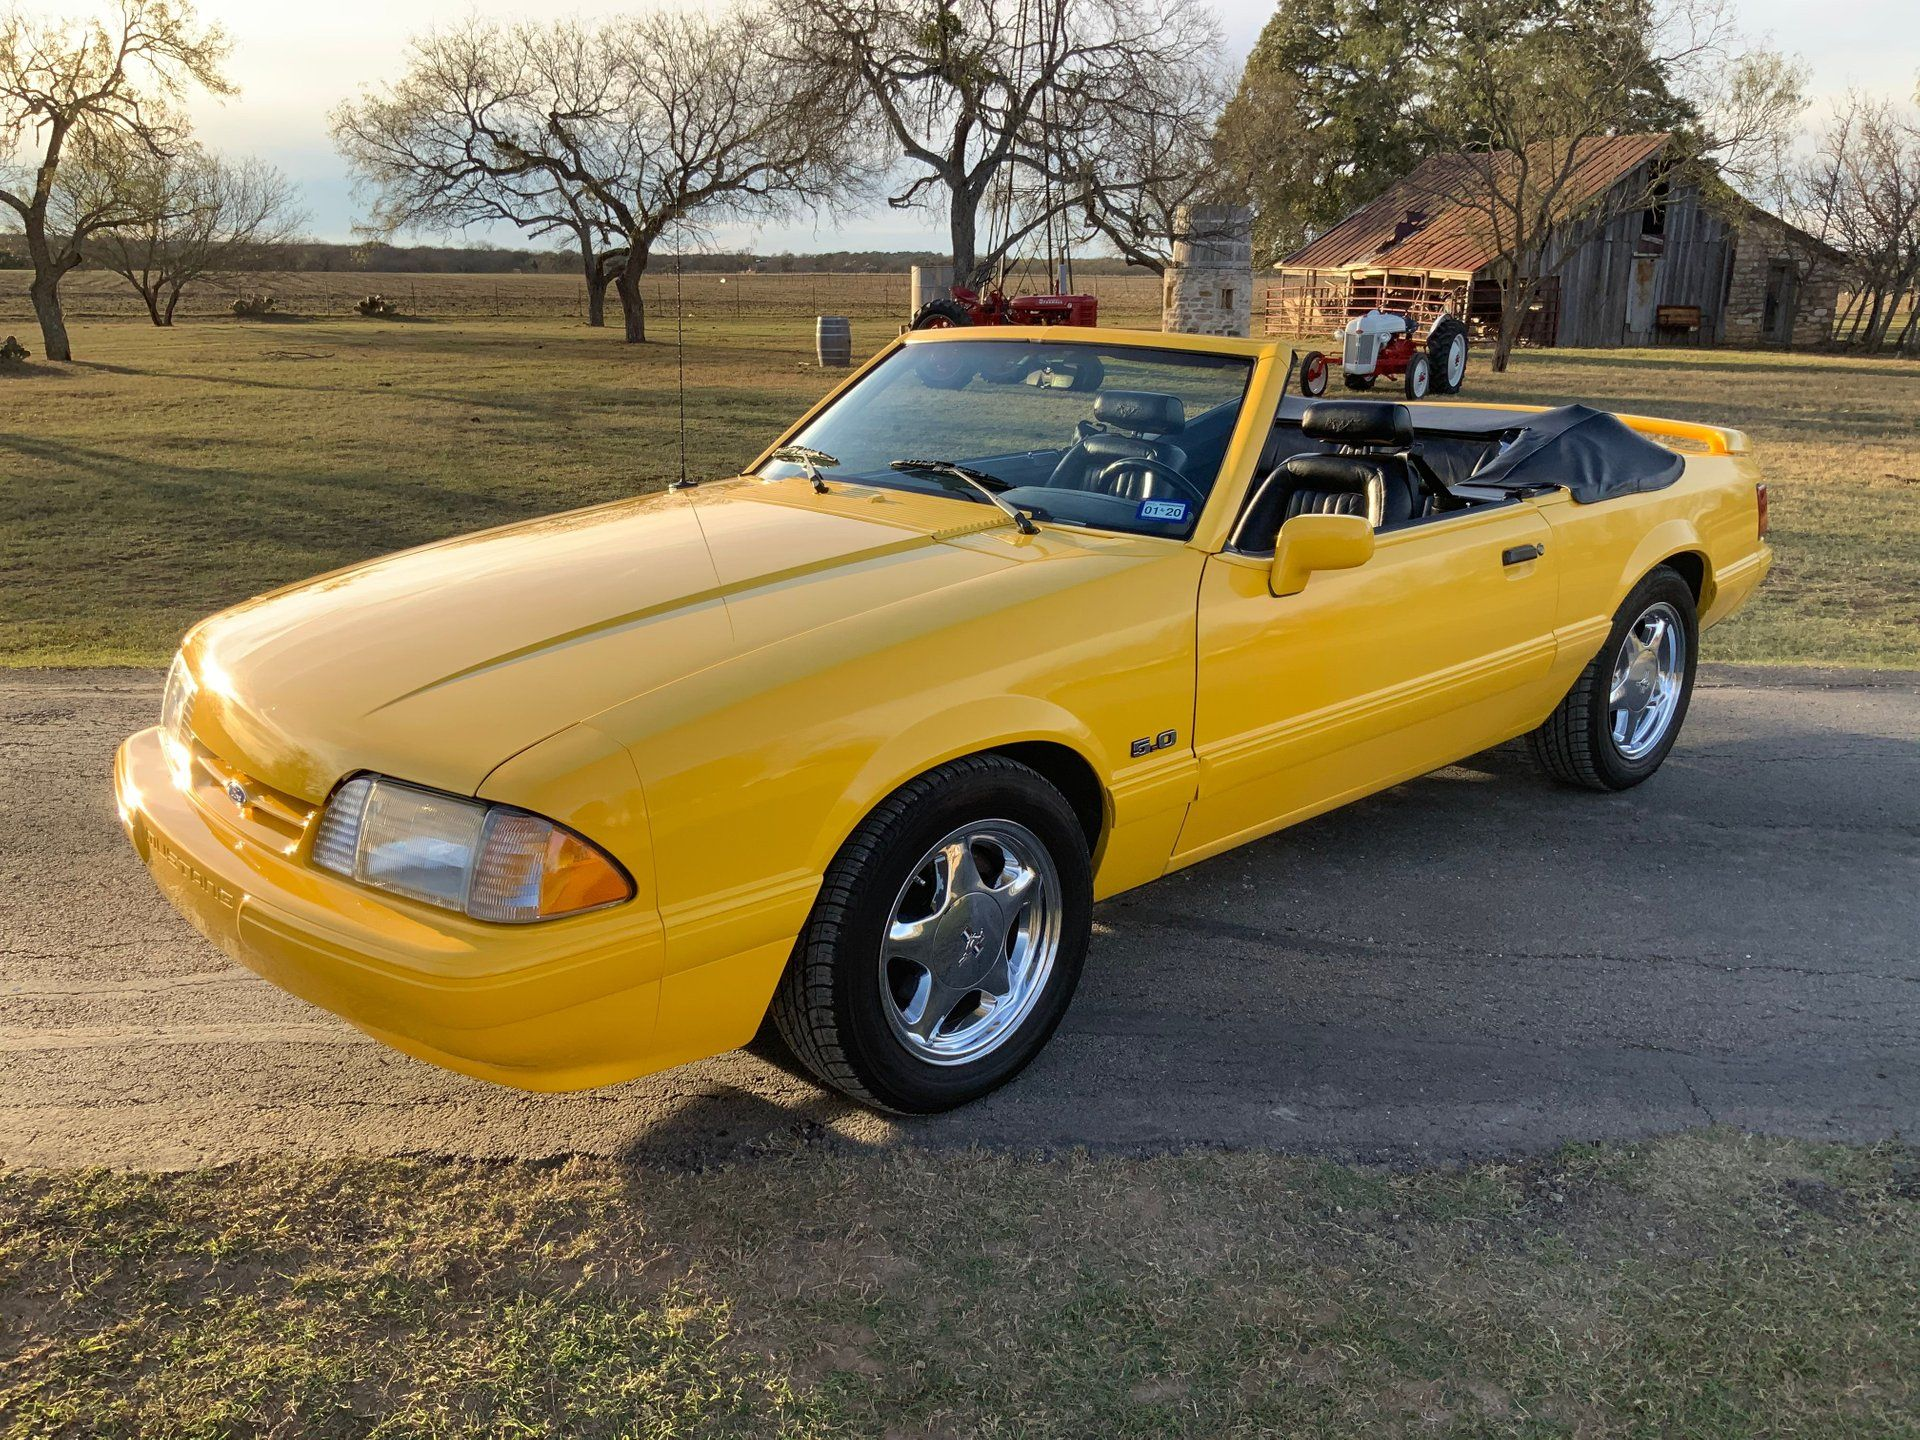 "<img src=""1993-ford-mustang-feature.jpg"" alt=""A rare 1993 Ford Mustang LX convertible feature car in Canary Yellow"">"